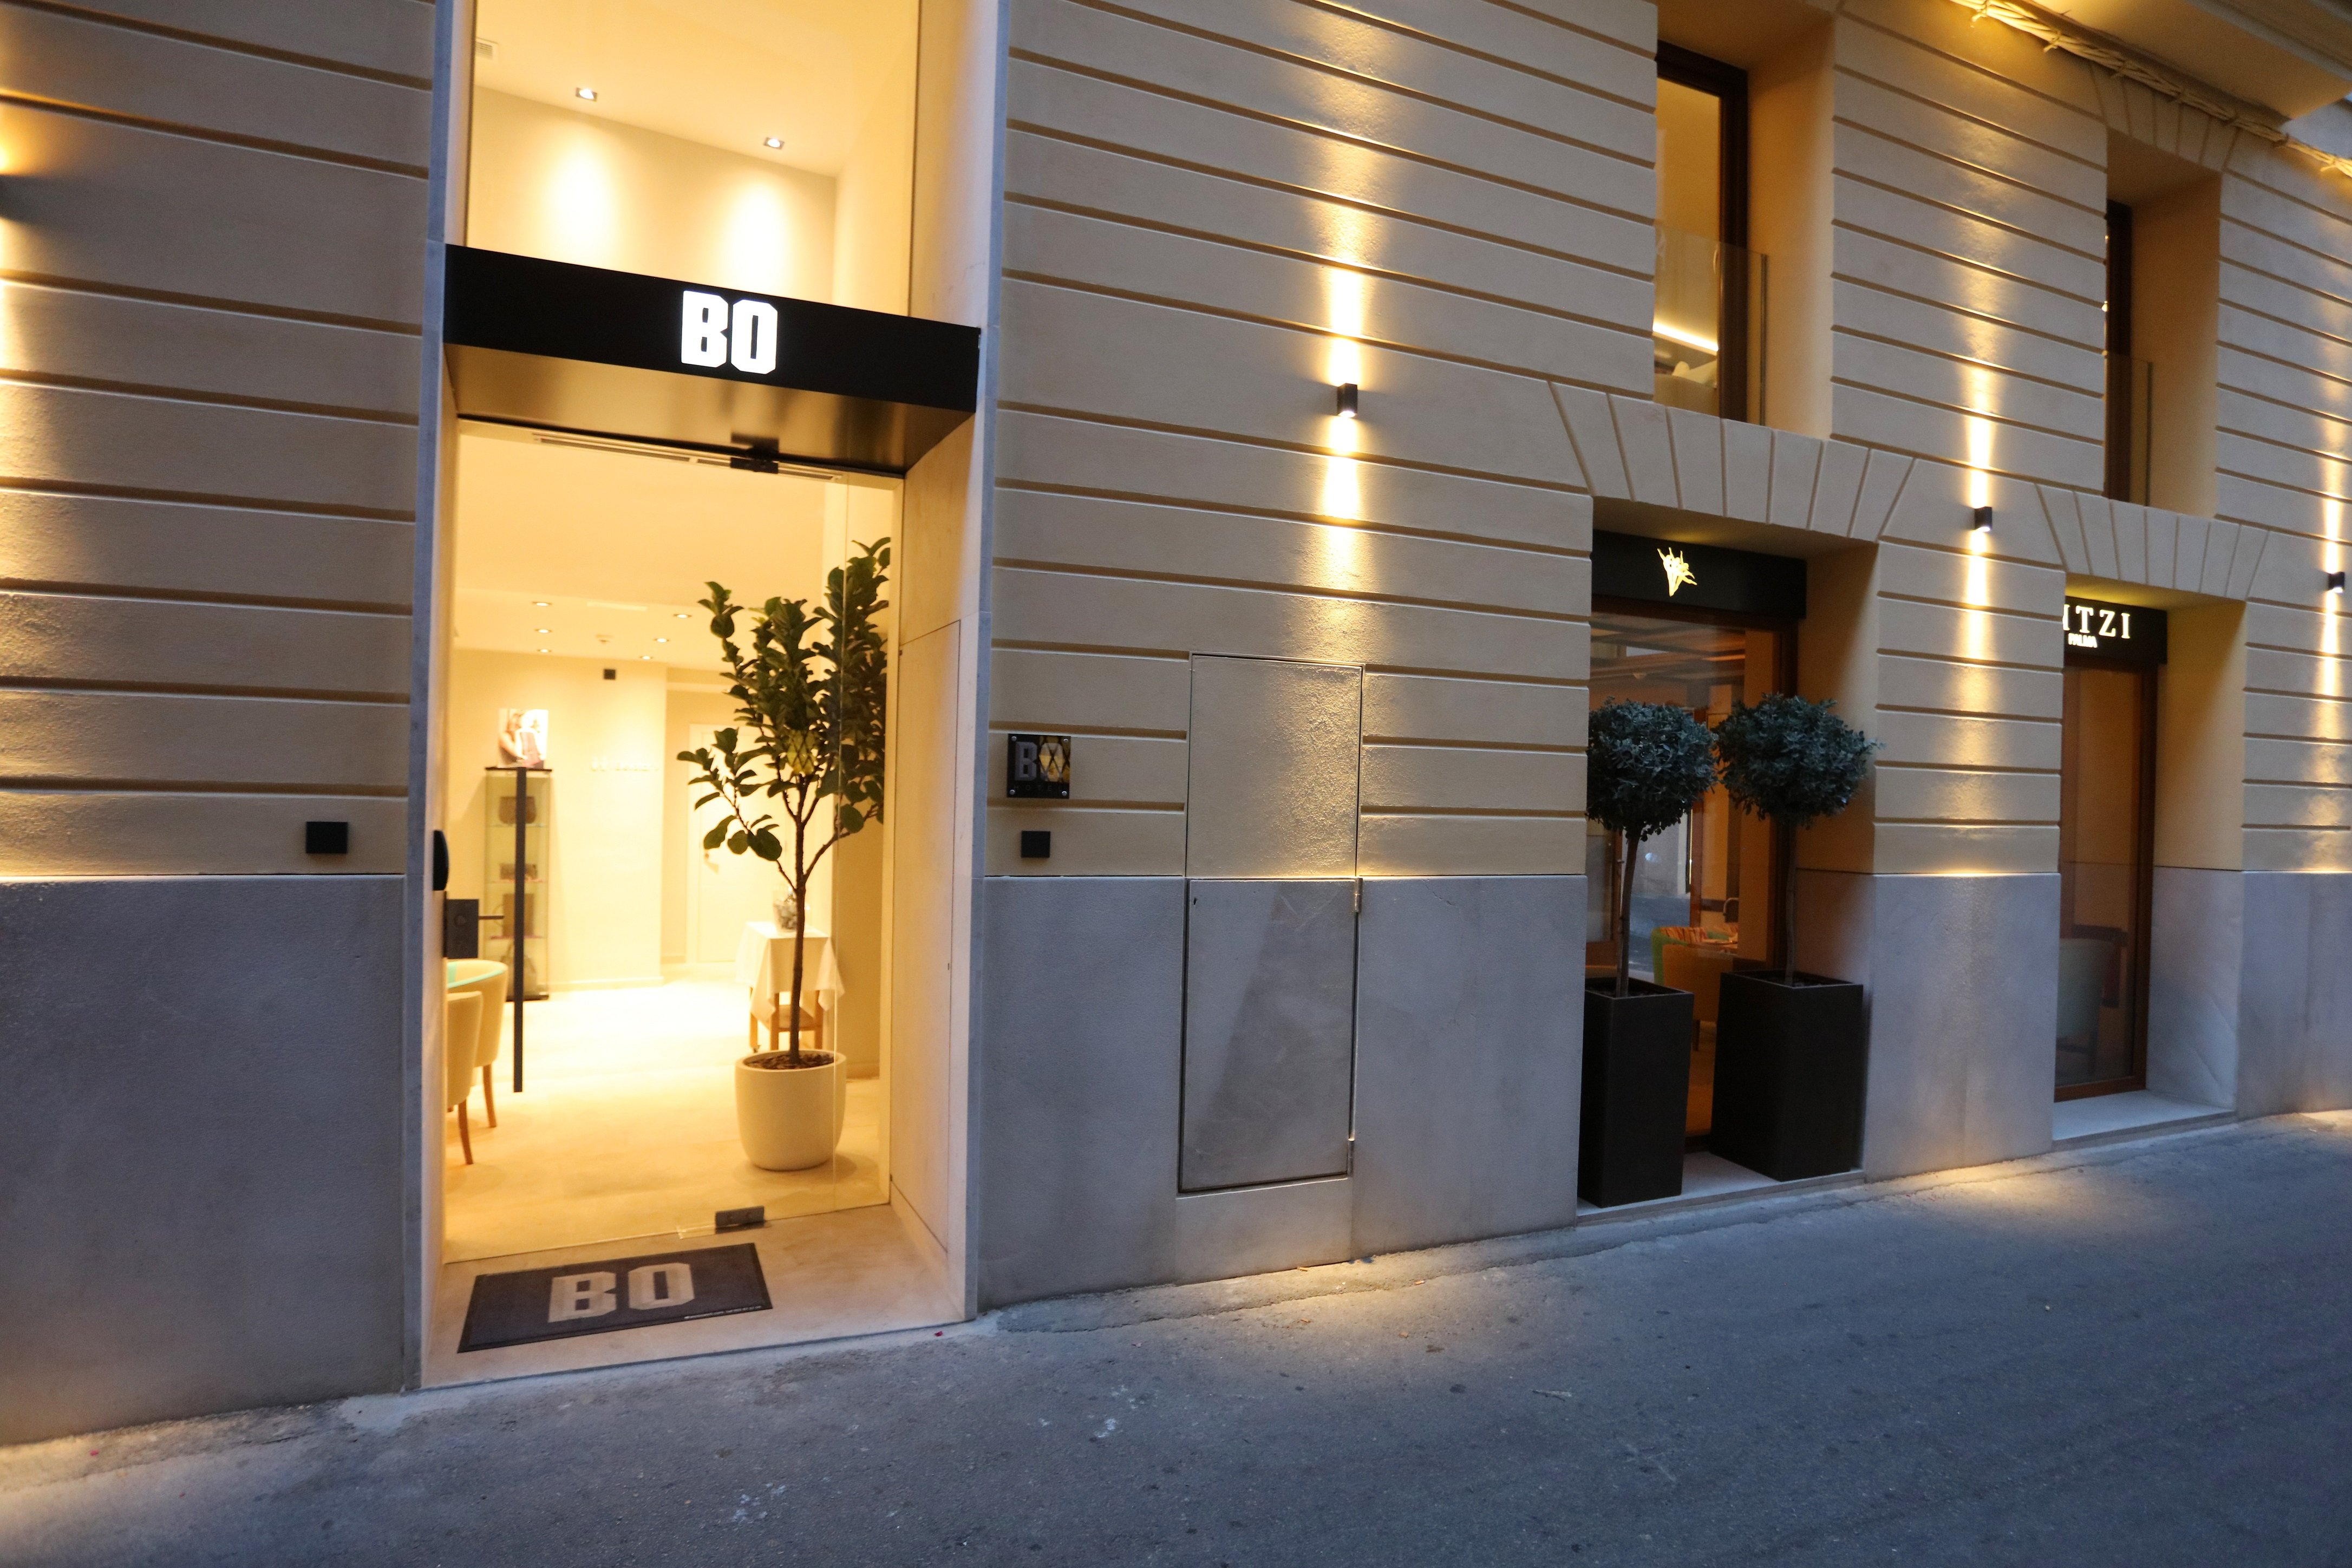 Gorgeous luxury boutique Bo Hotel Palma welcoming entrance